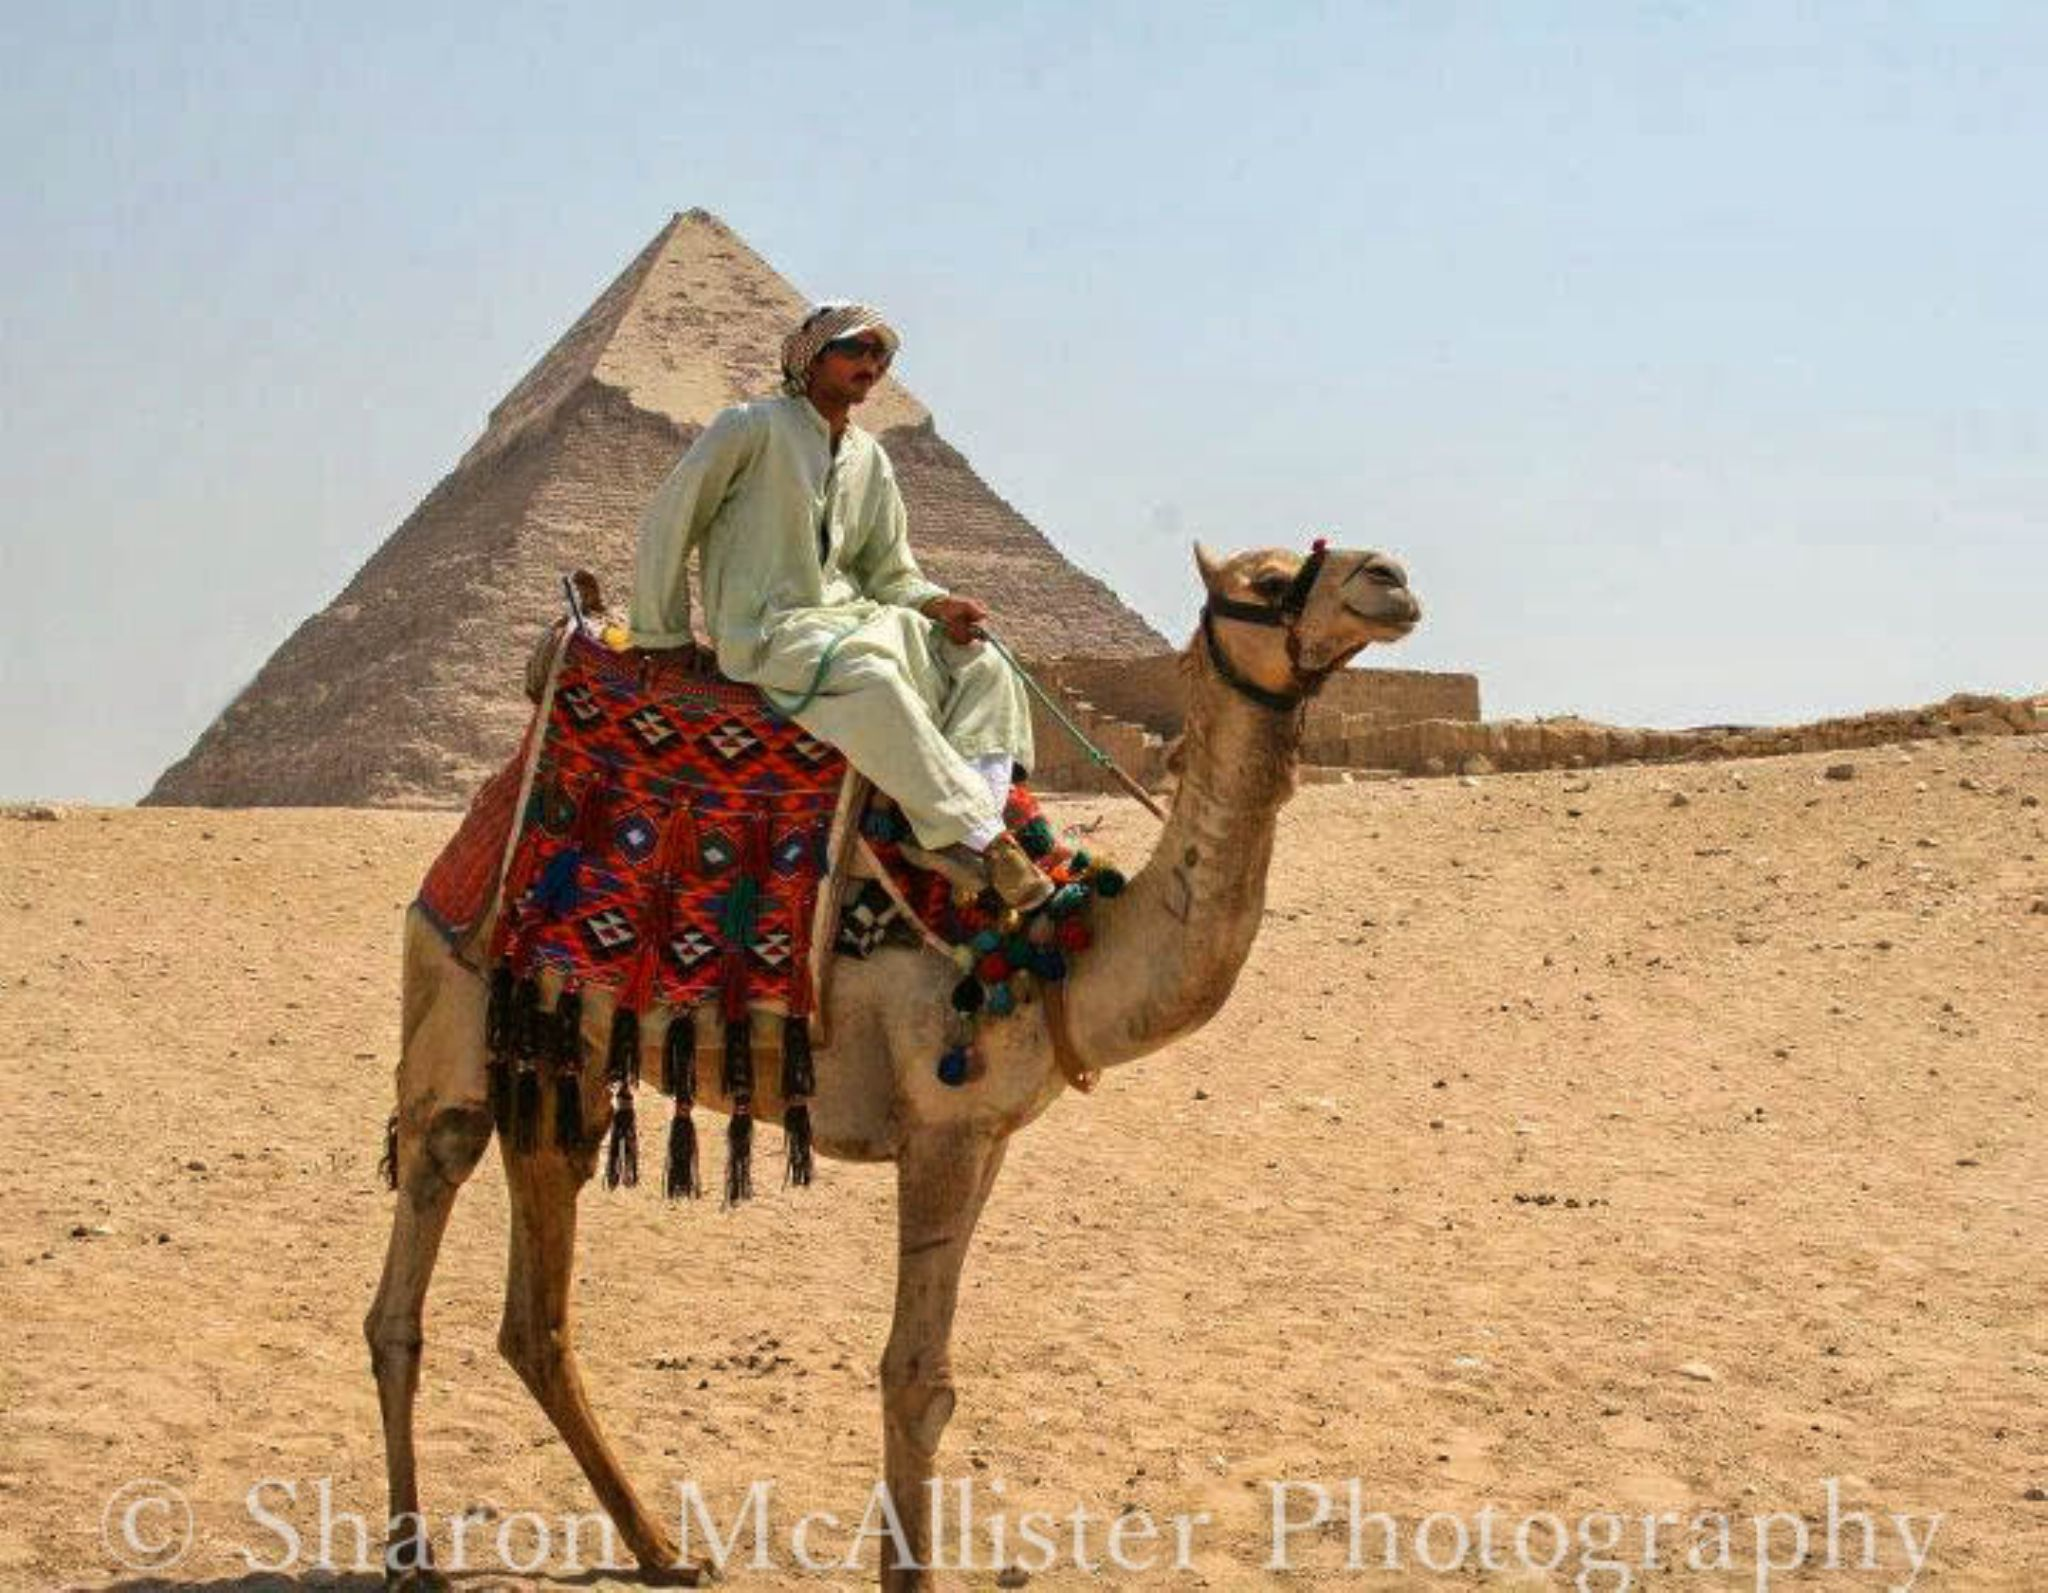 Bedouin man on his Camel at Egyptian Pyramid by Sharon McAllister